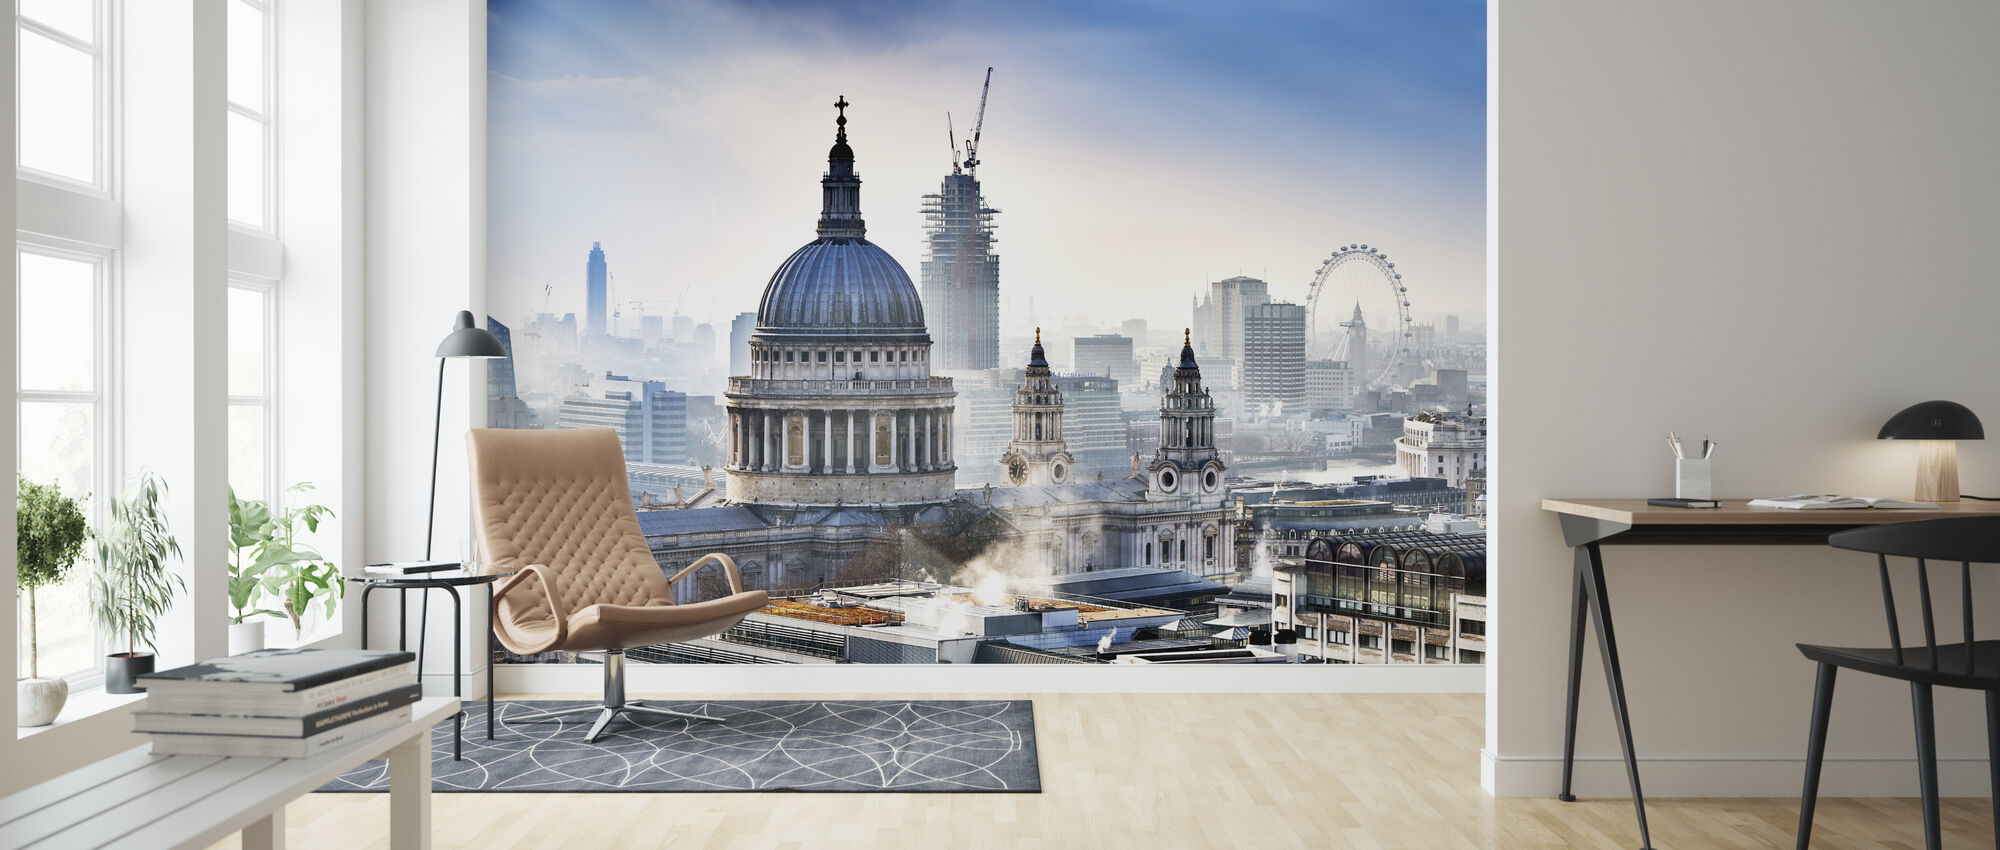 St Pauls Cathedral - Wallpaper - Living Room